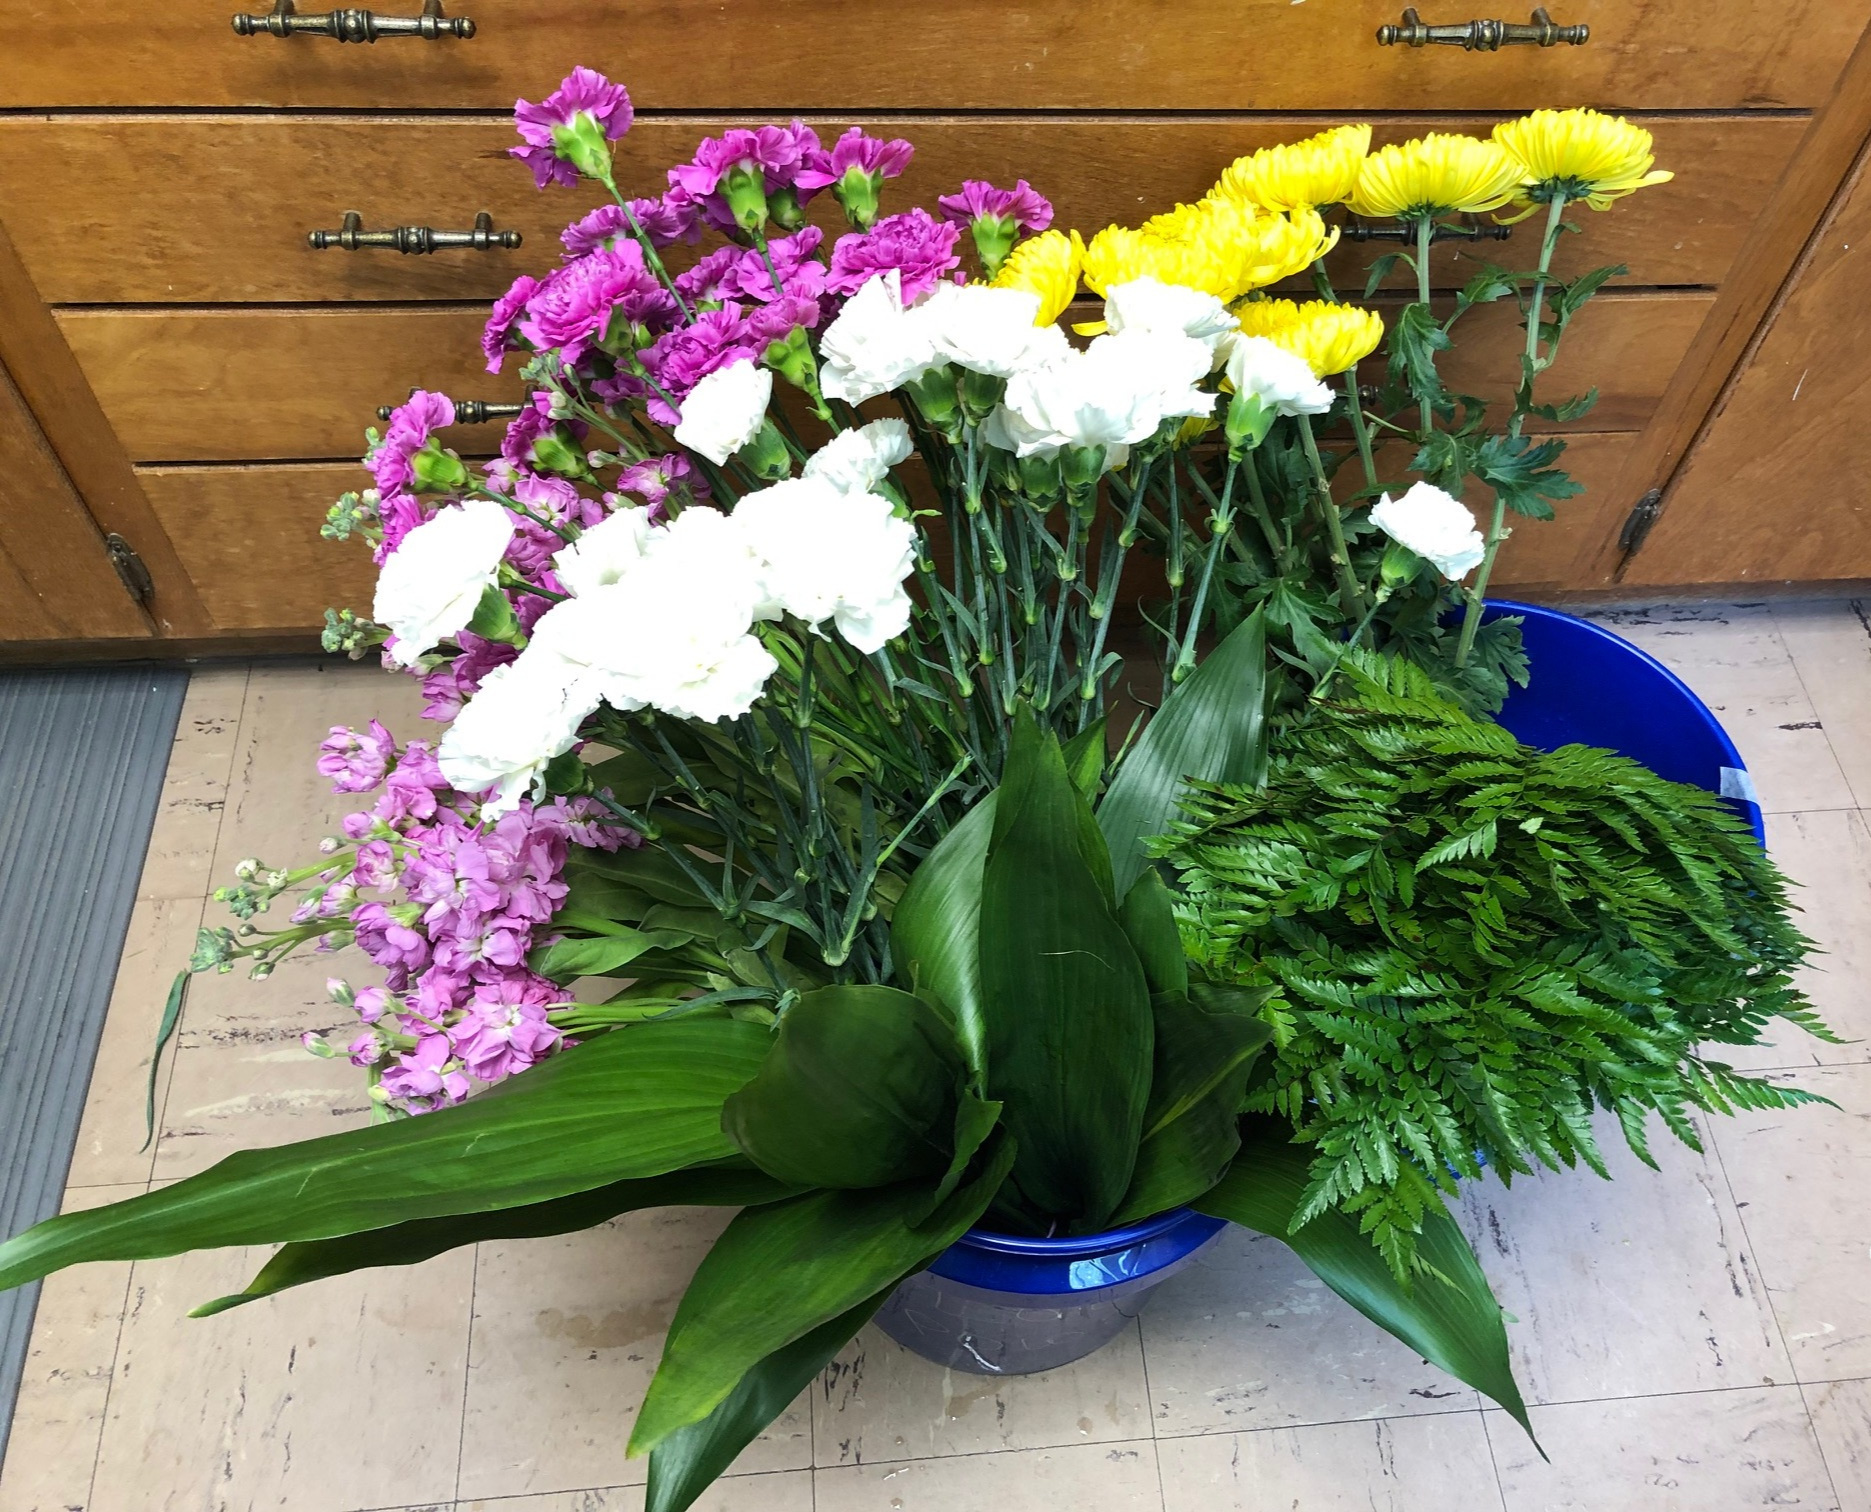 Yellow football mums, white and purple carnations, purple stock, aspidistra, leather leaf fern.